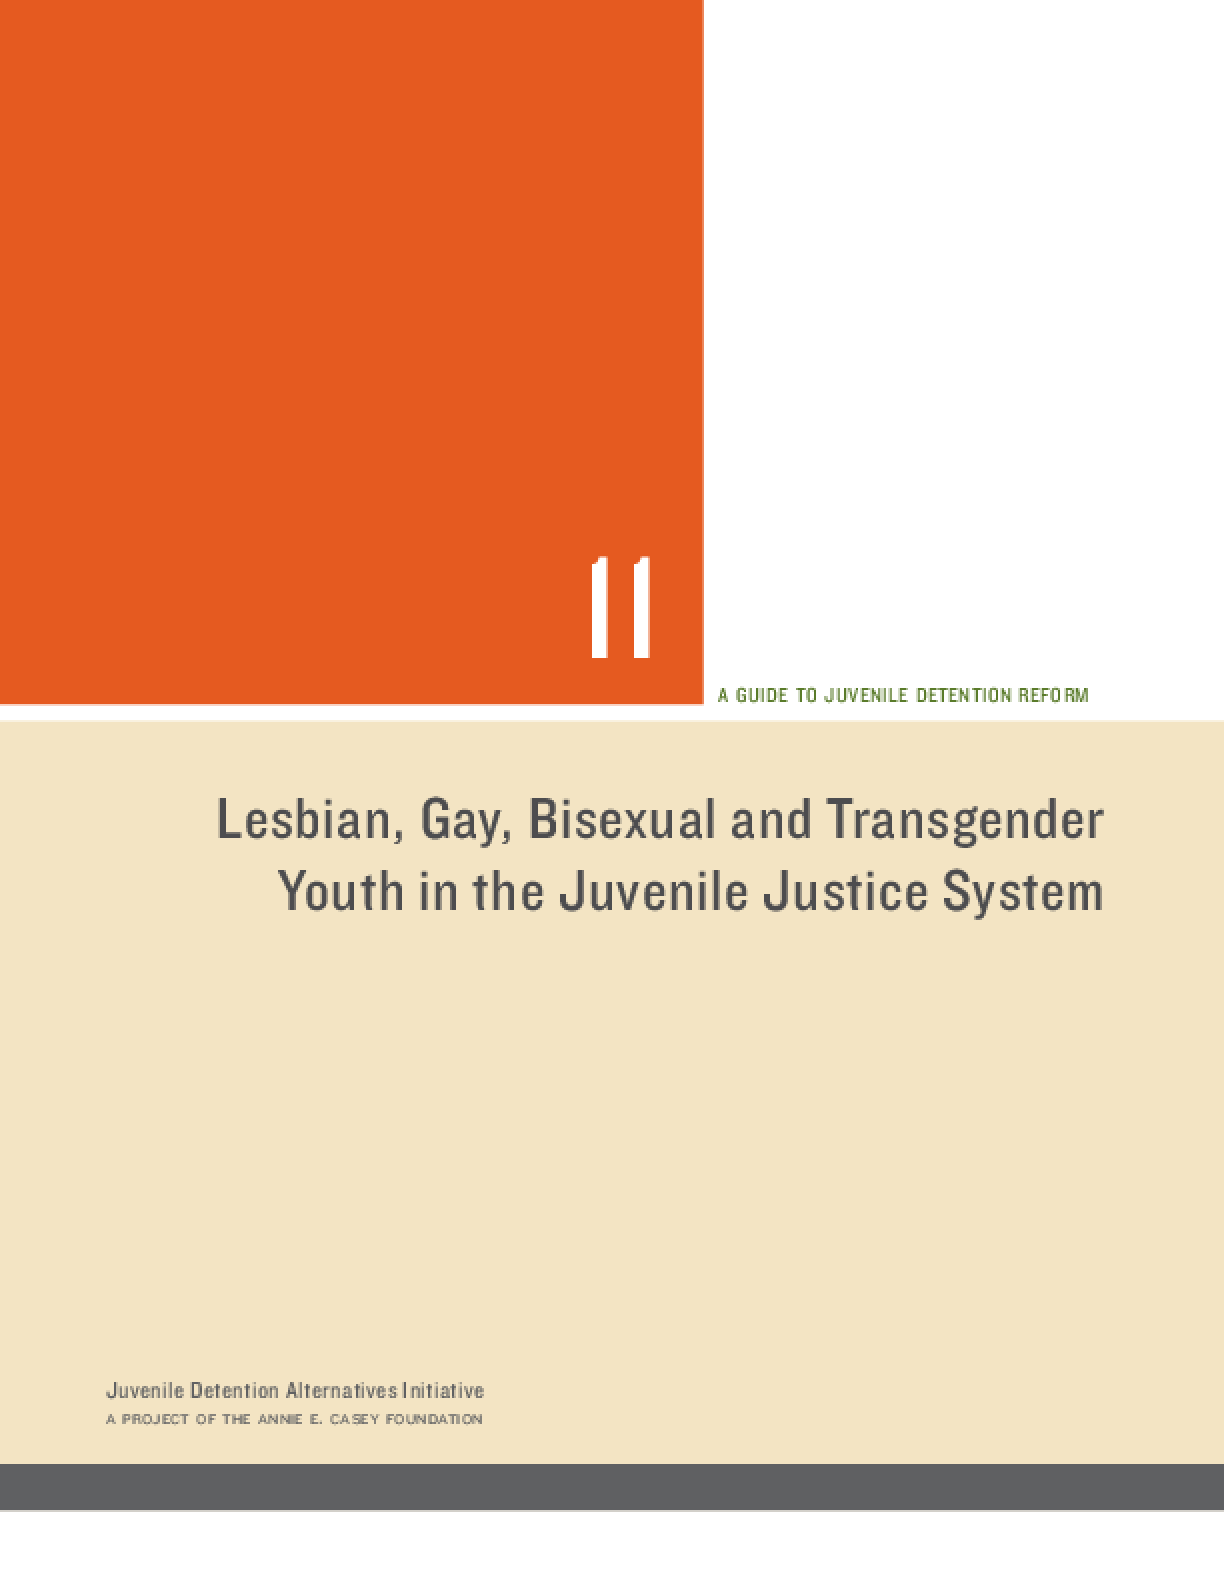 Lesbian, Gay, Bisexual and Transgender Youth in the Juvenile Justice System